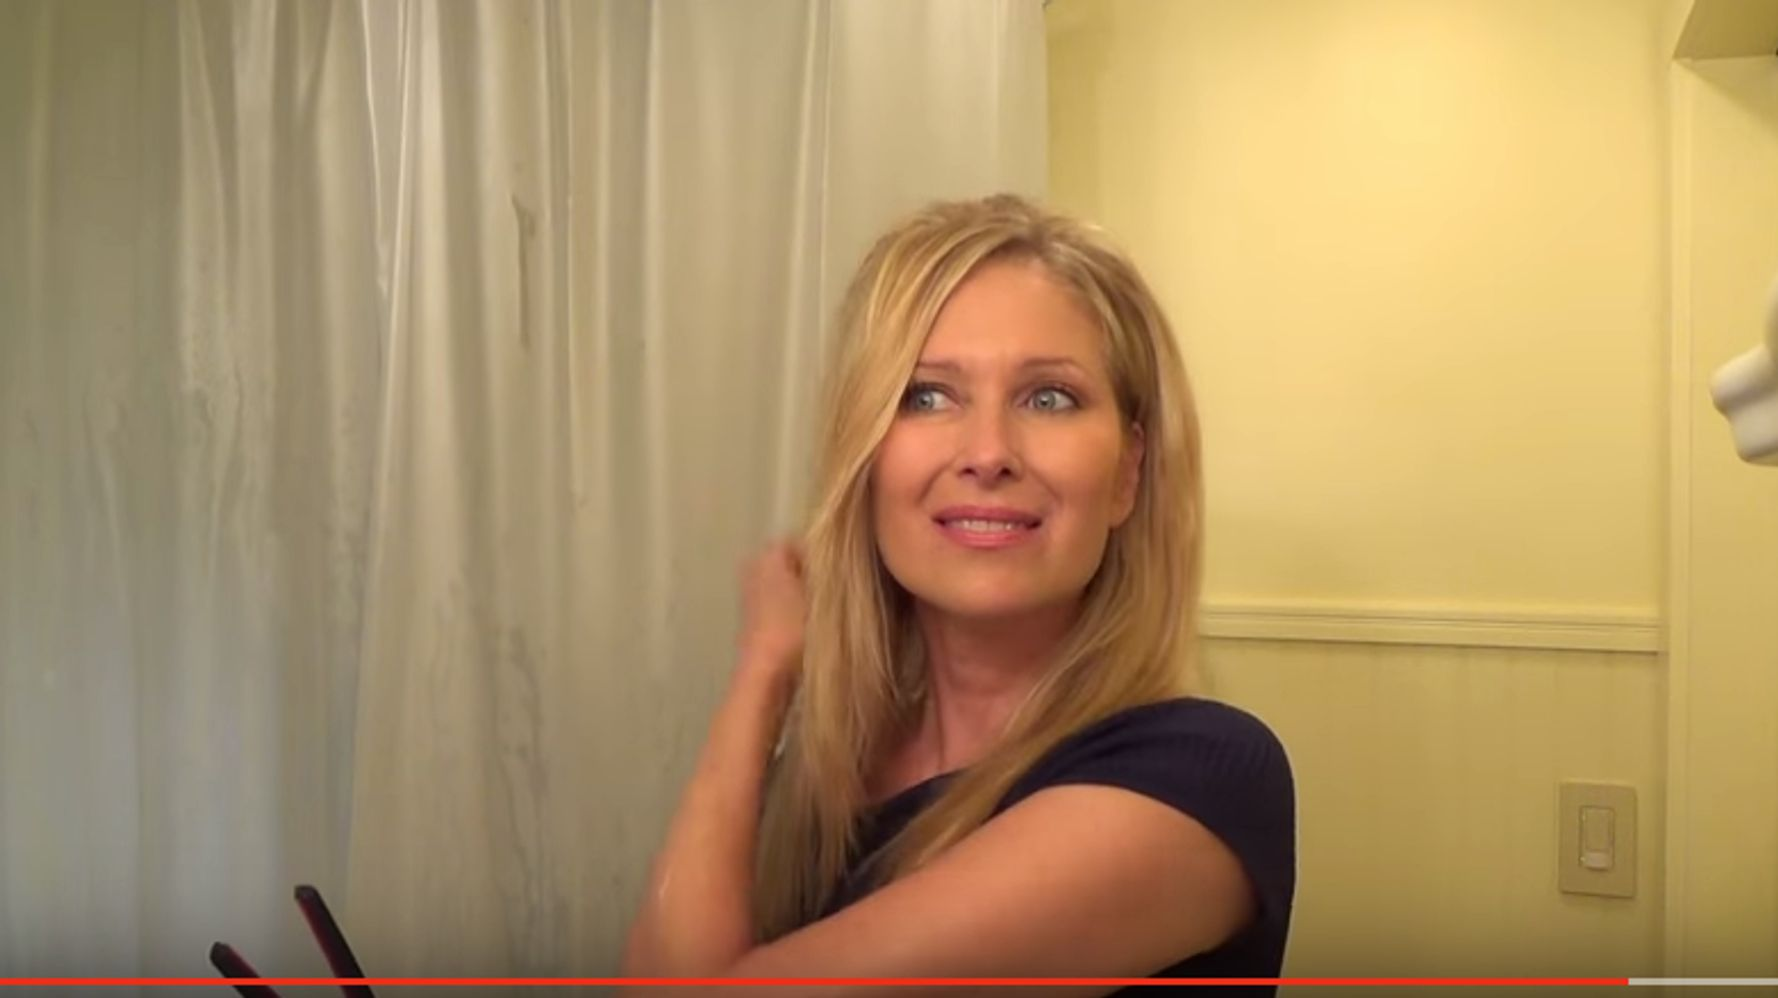 5 Mature Beauty Vloggers Every Midlife Woman Needs To Follow